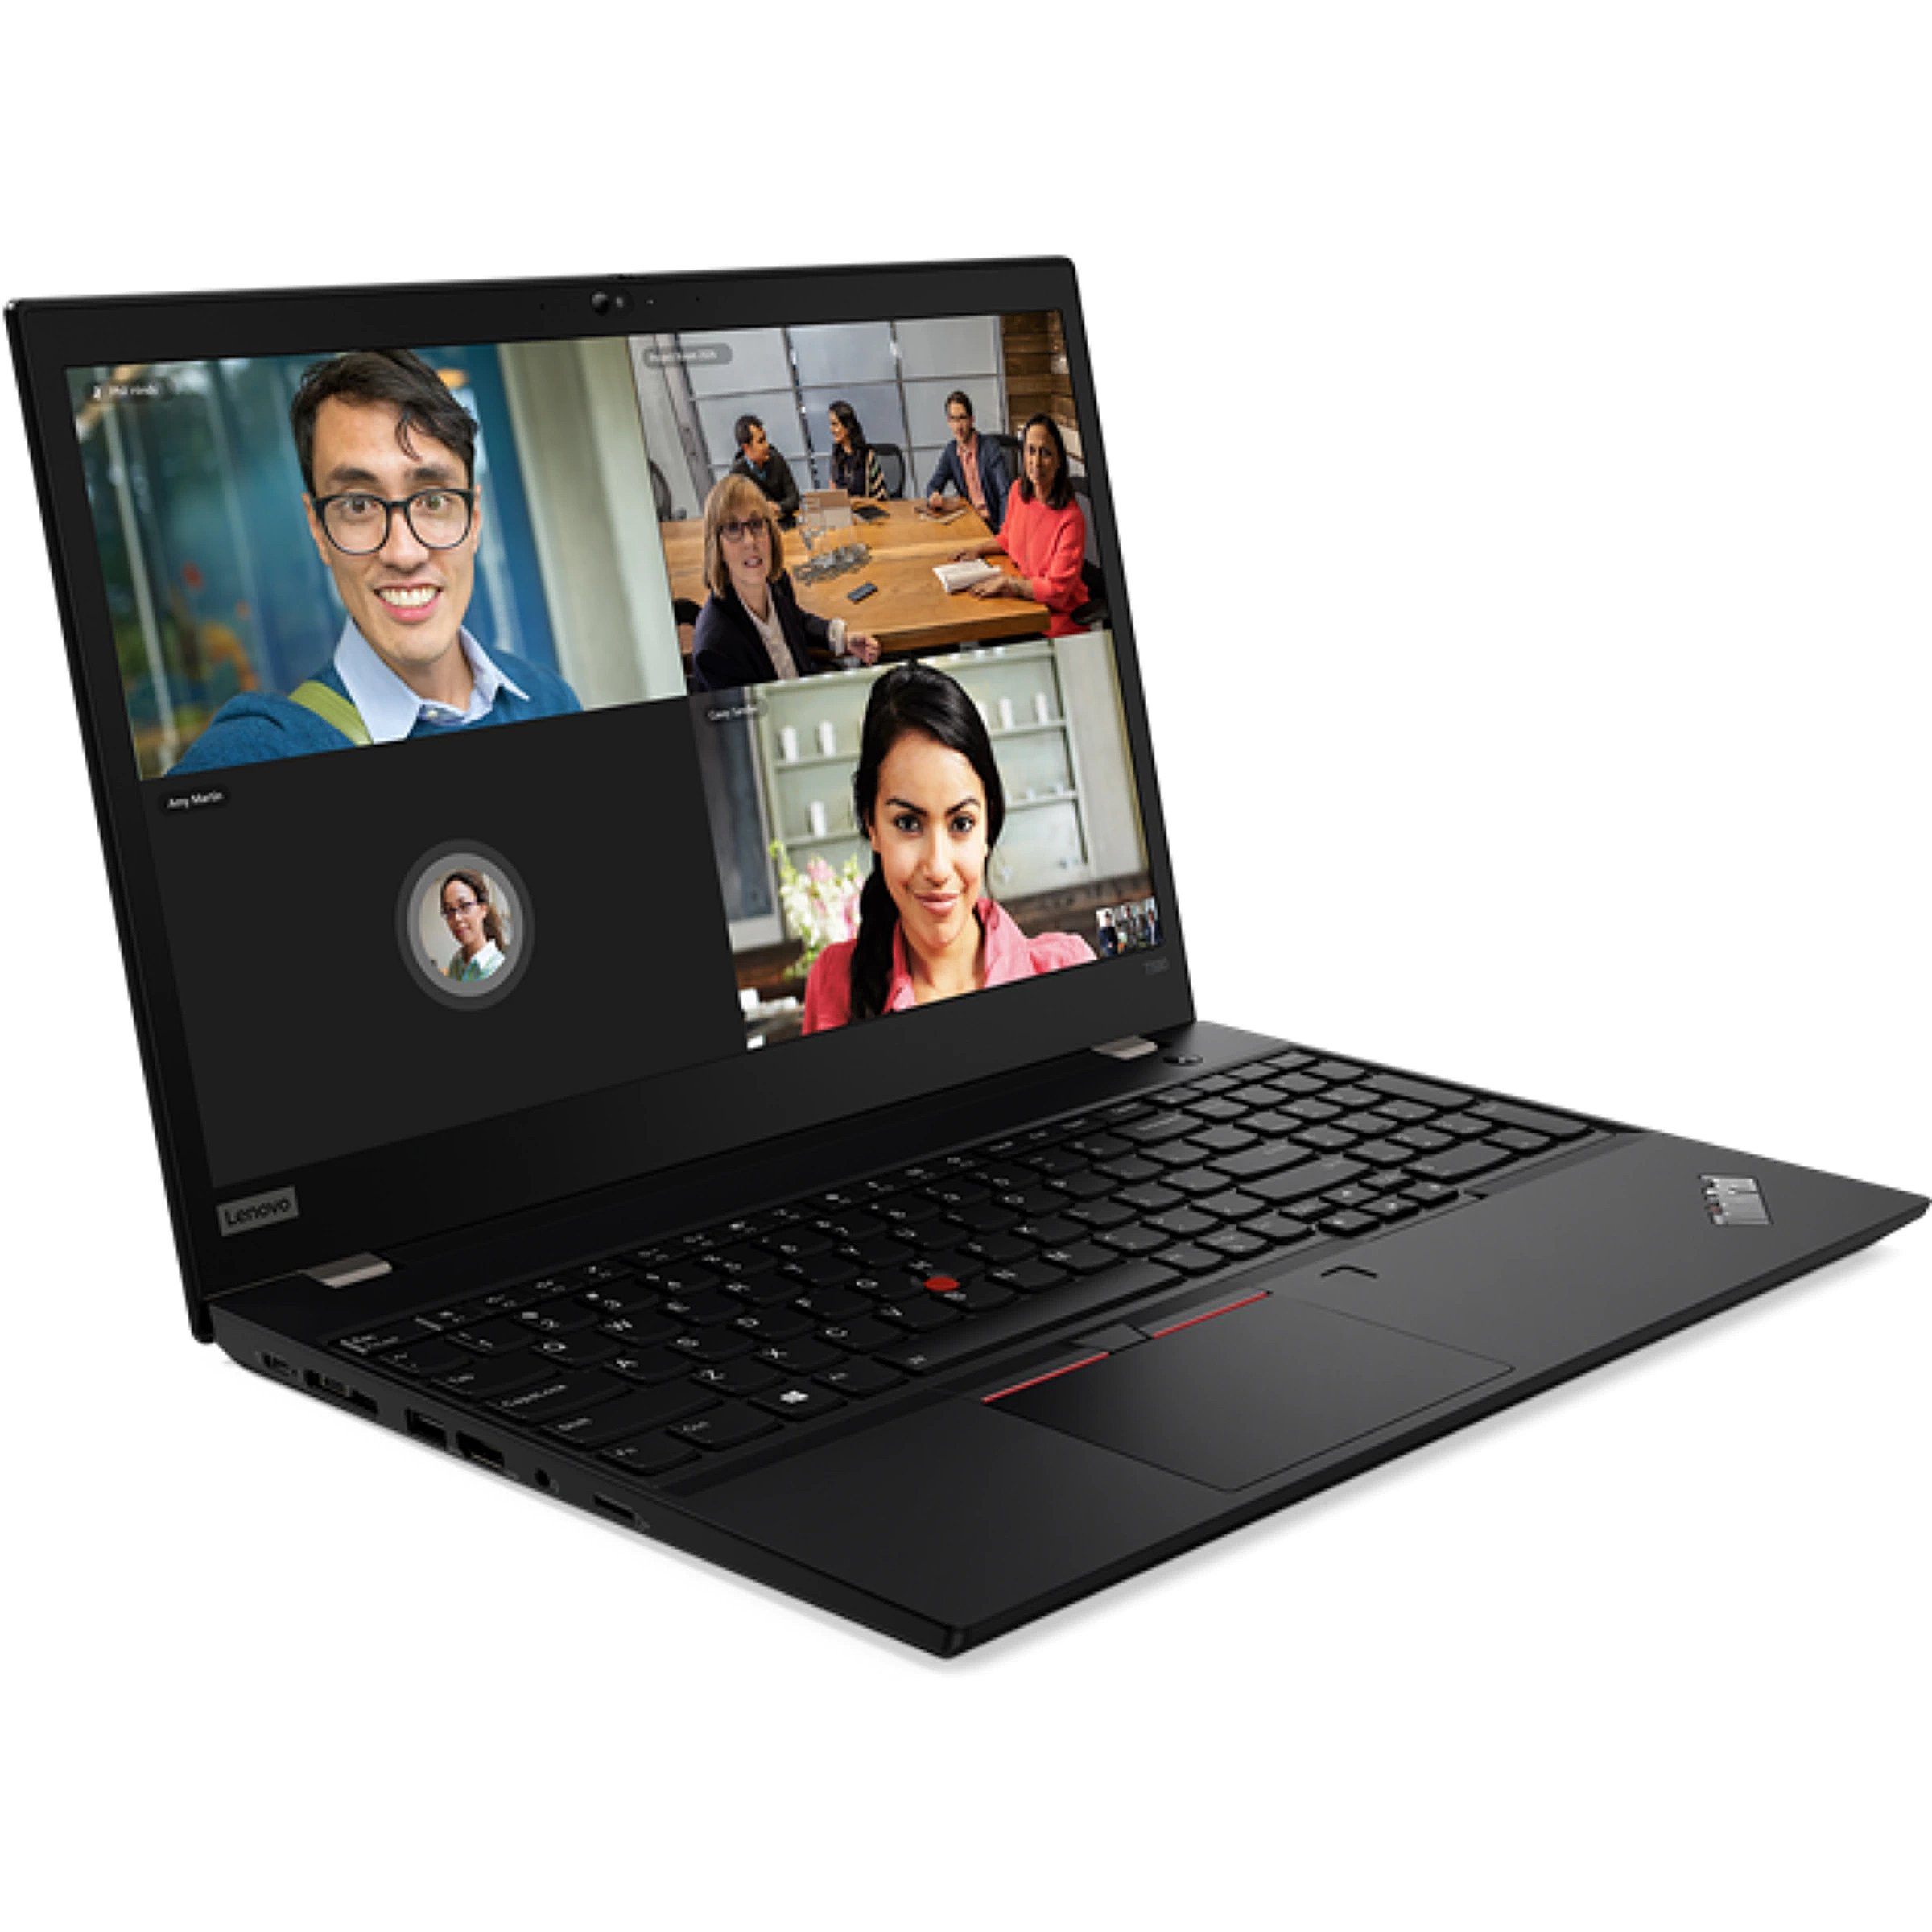 Lenovo ThinkPad T590 Black, 15.6